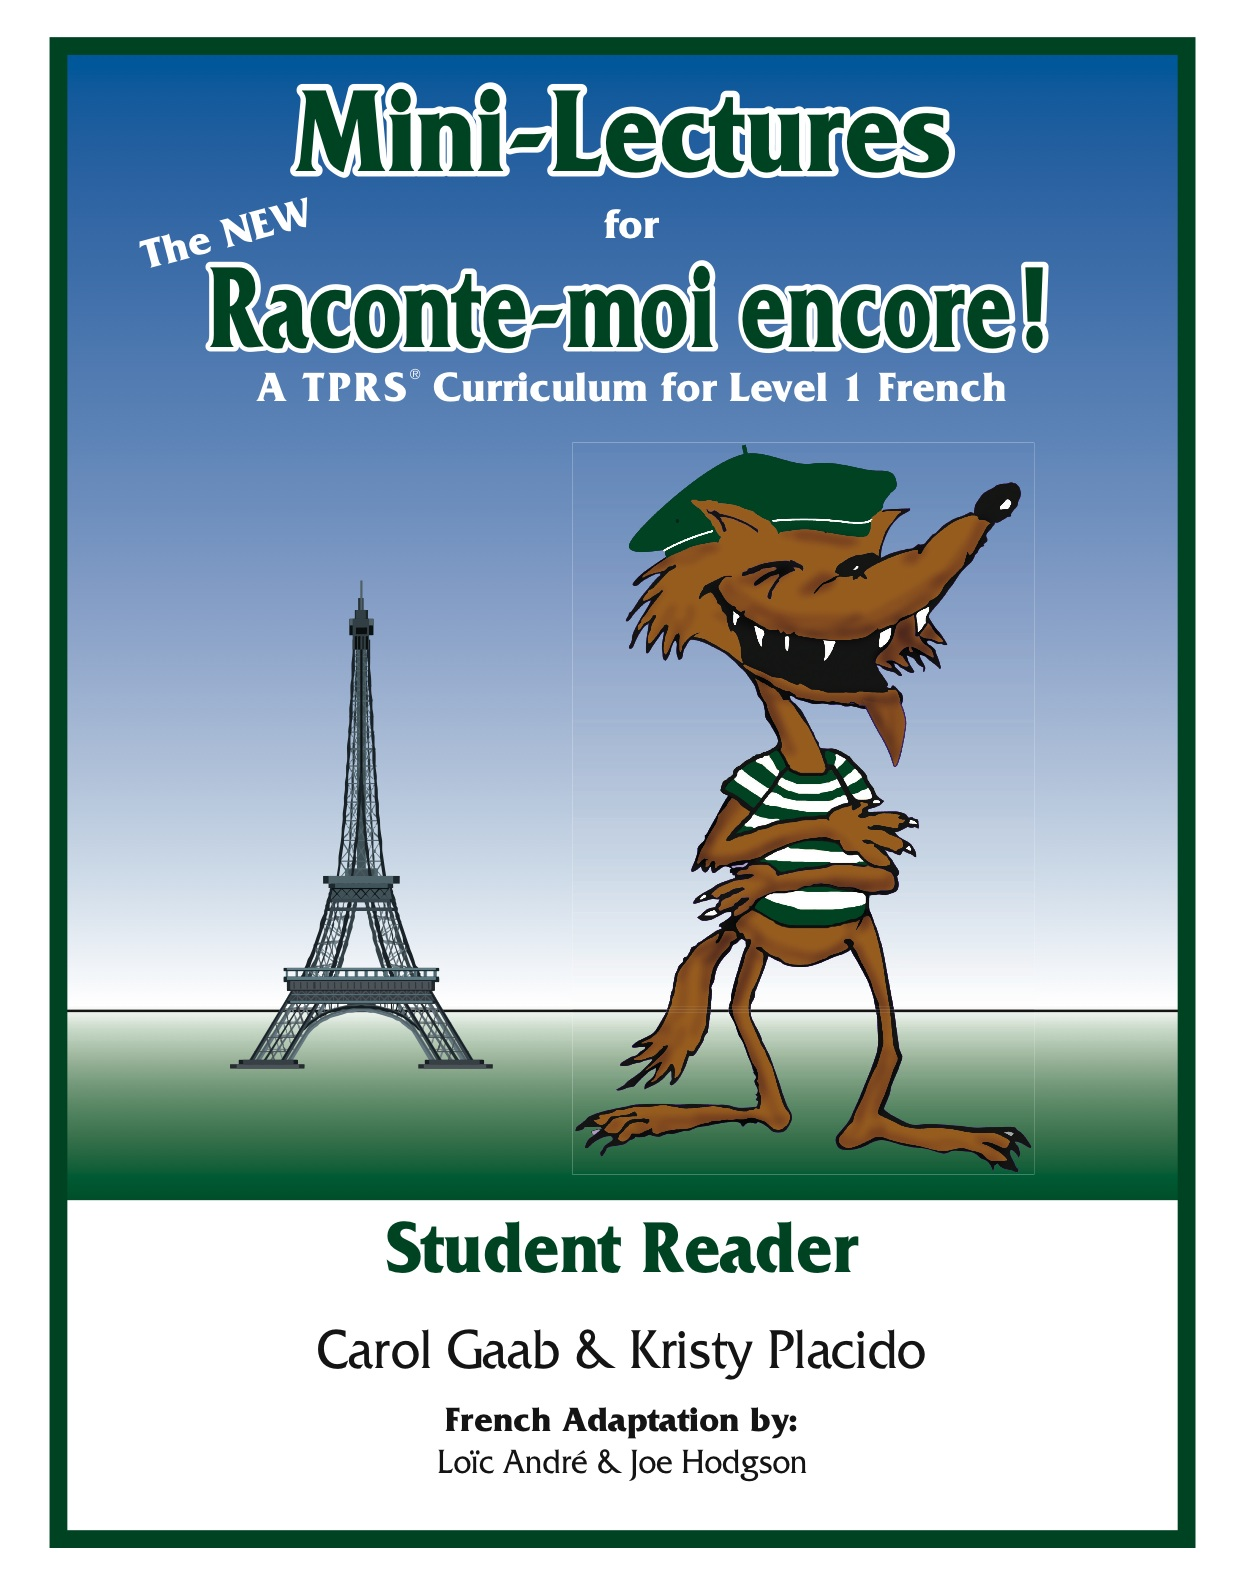 The NEW Raconte-moi encore! Student Reader